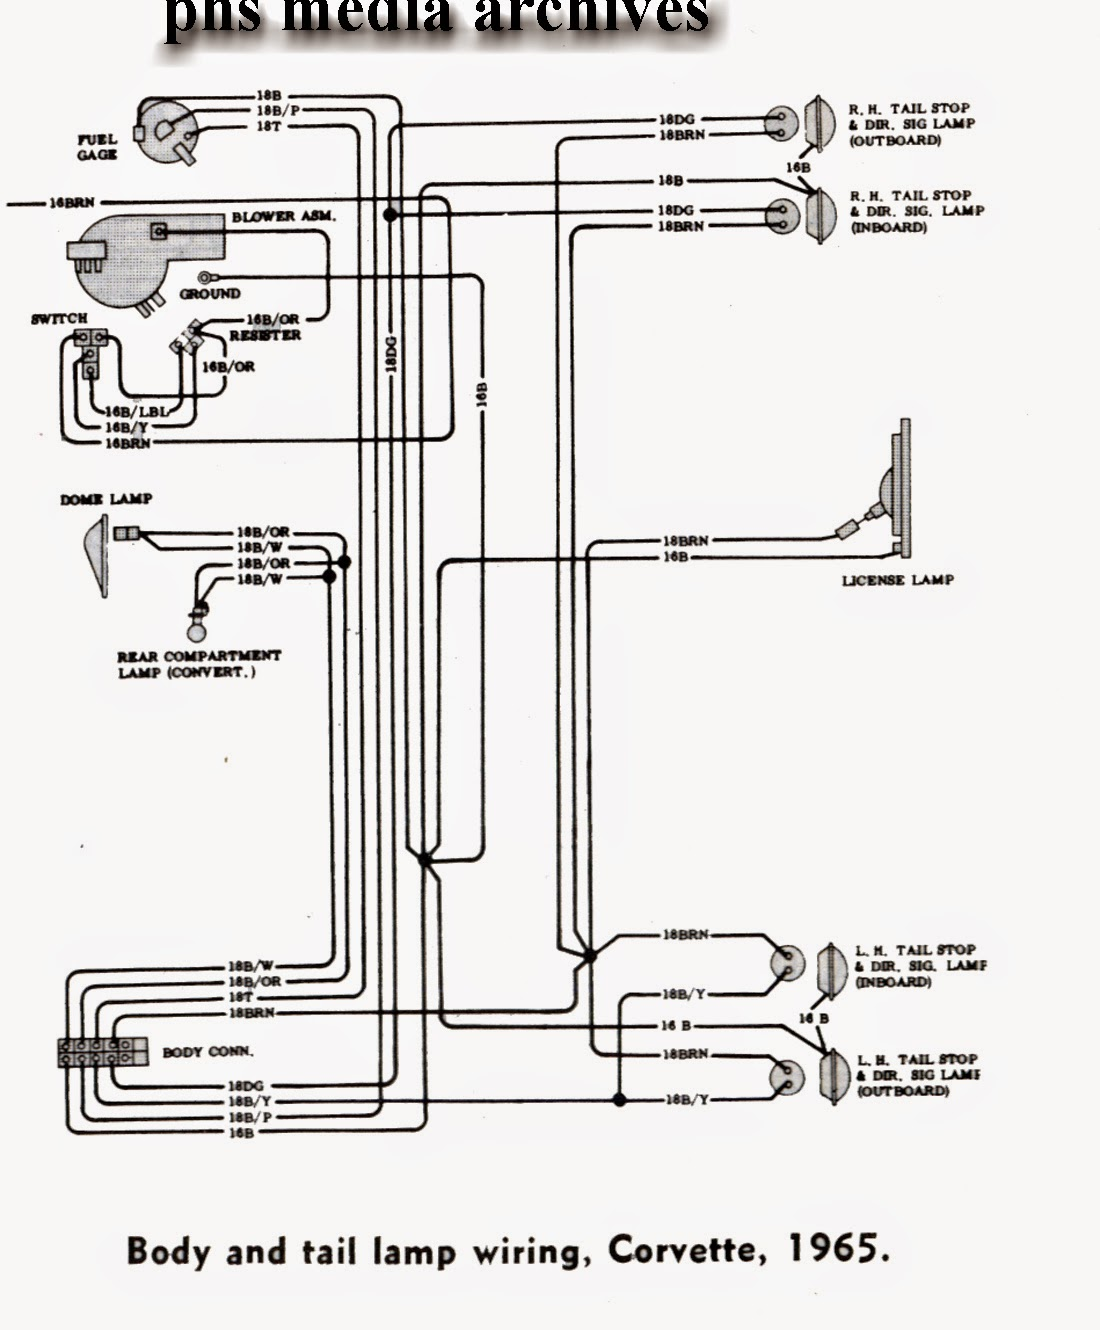 [DIAGRAM] 1977 Chevrolet Corvette Wiring Diagram FULL